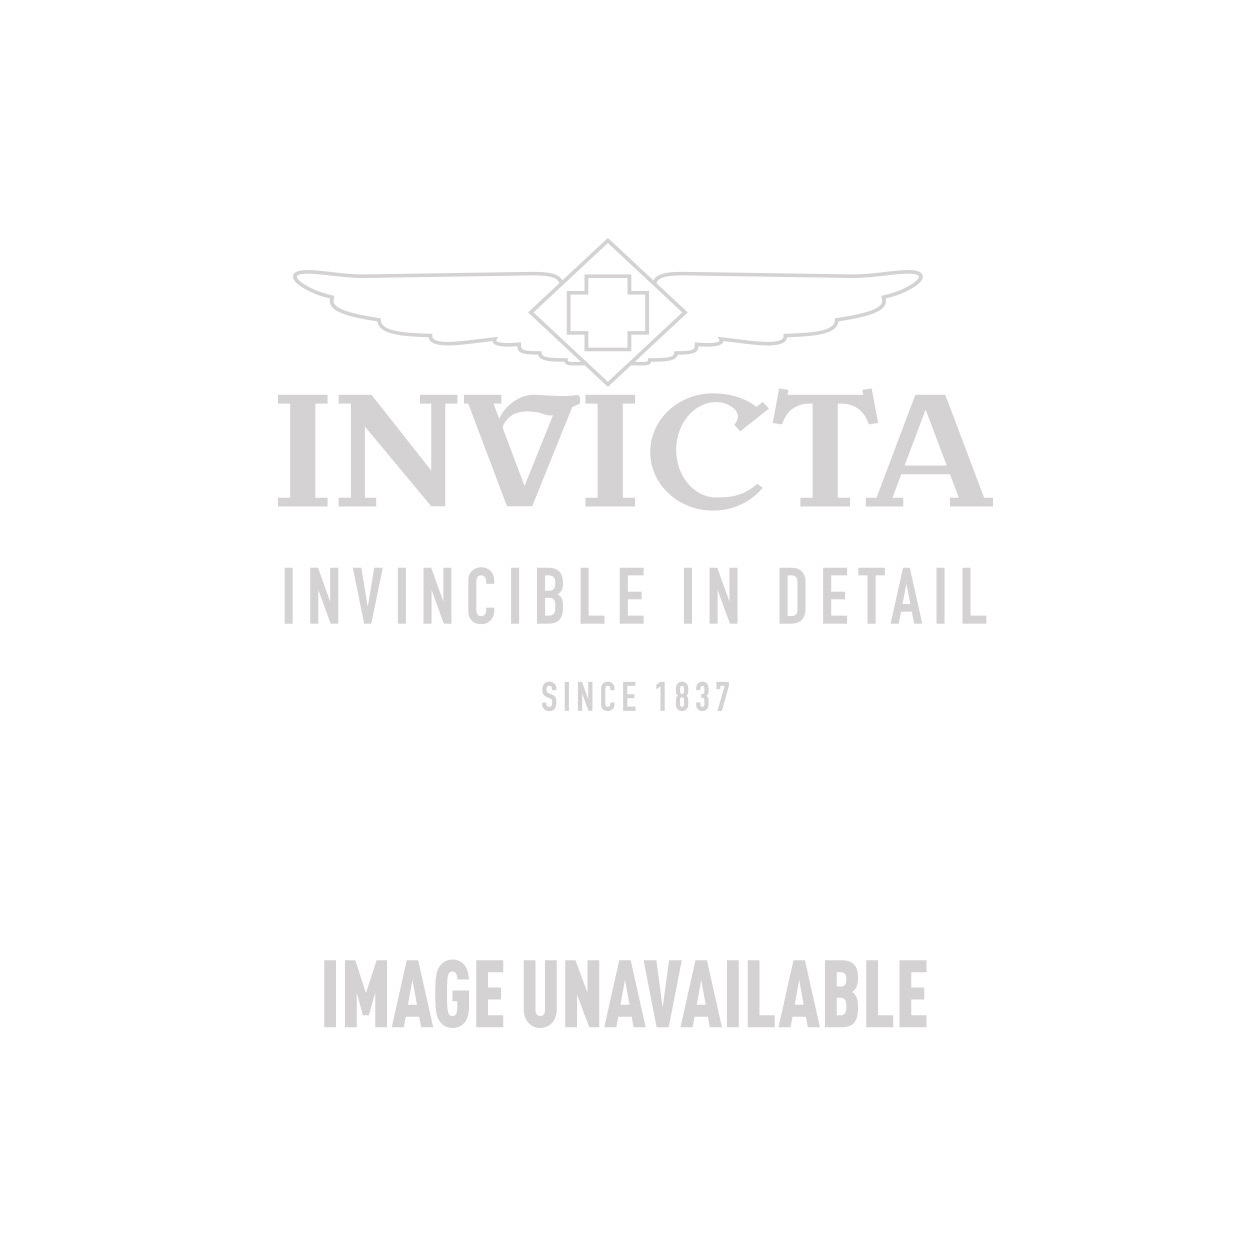 Invicta Ceramics Swiss Movement Quartz Watch - Titanium, Stainless Steel  case with Titanium tone Ceramic